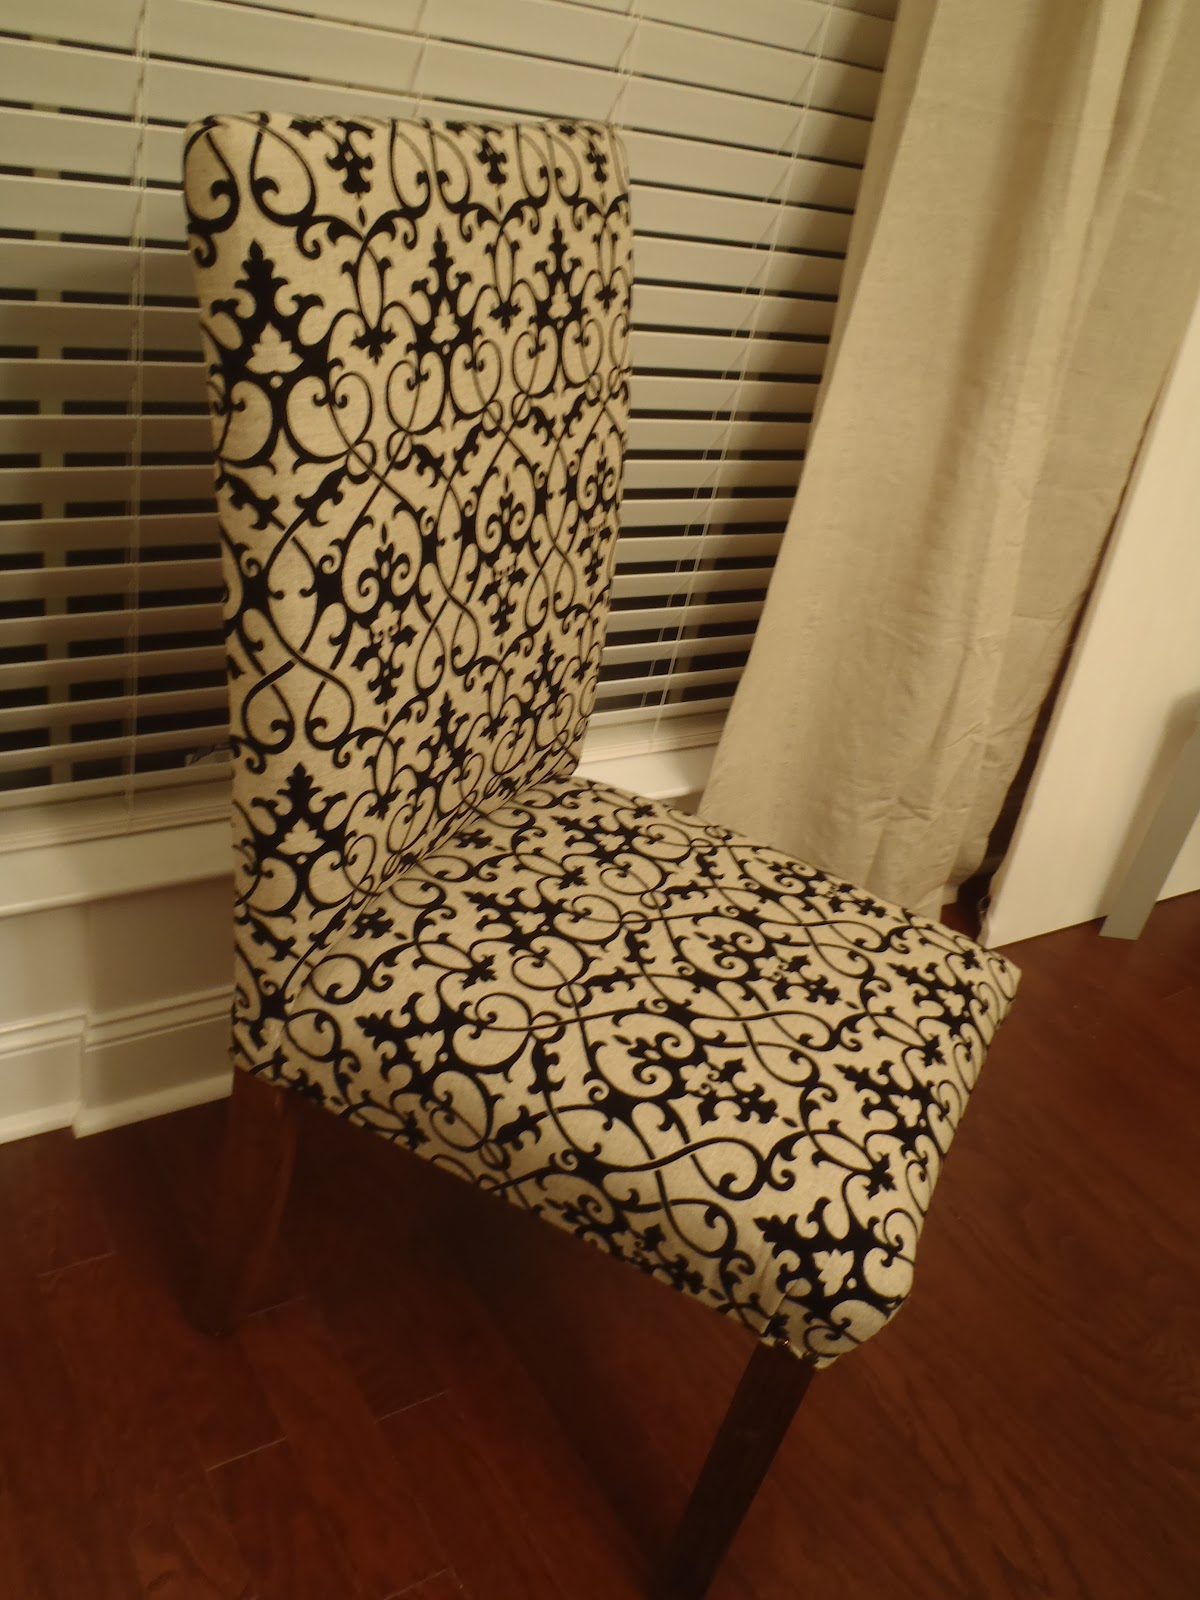 Dining Room Chair Covers Near Me Rail At Lowes Lazy Liz On Less Diy Chairs Finally Finished Them